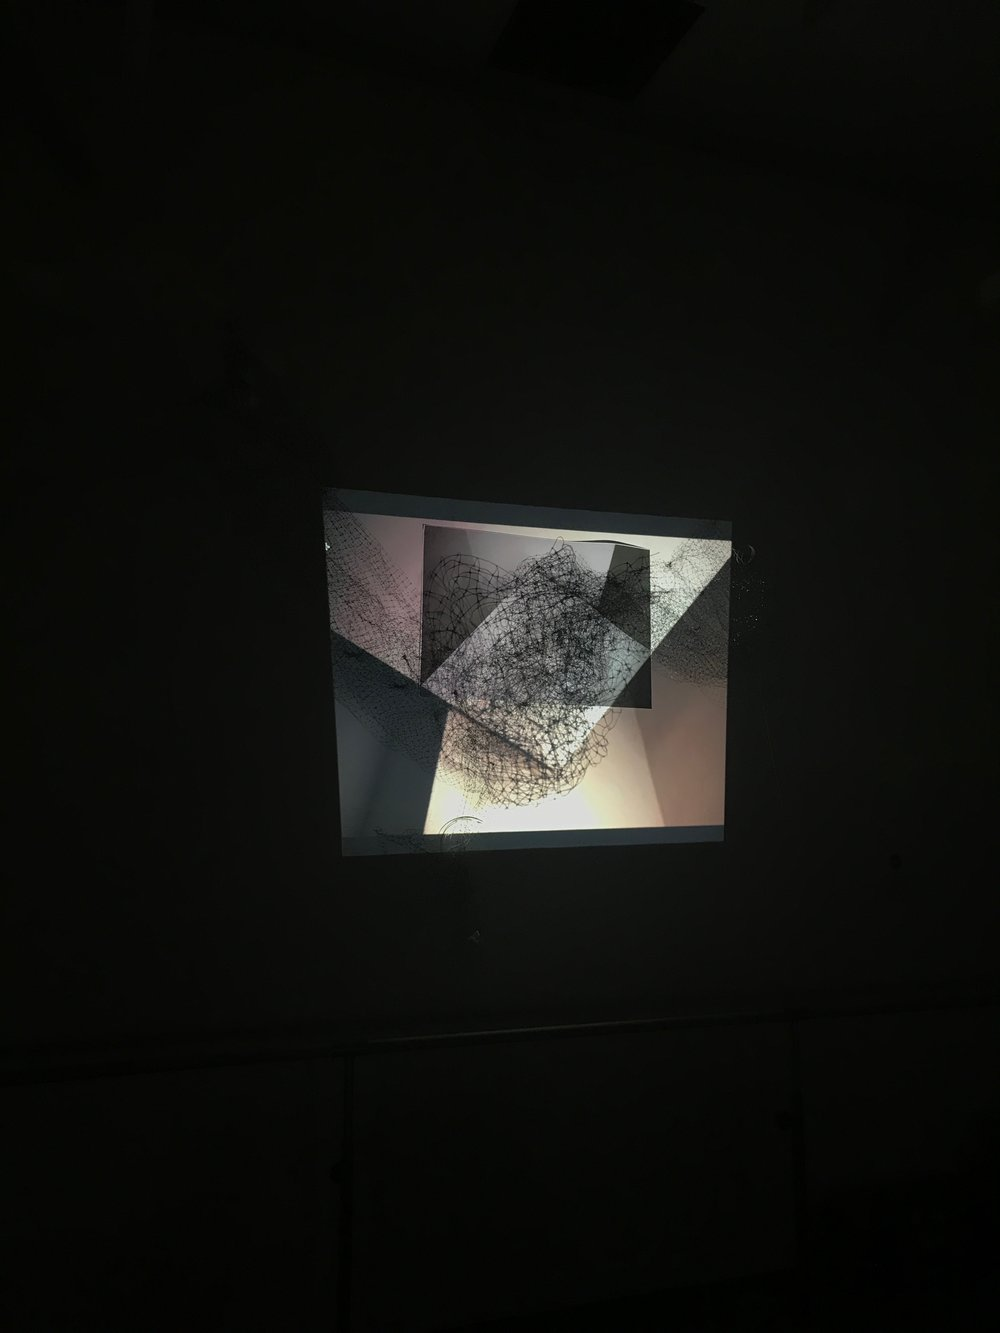 Untitled. (2017) Installation View. B&W Photographic Print, Projection, and Bird Netting.     This installation was produced during my time at the Feminist Art Conference Residency, in Toronto, Ontario, May 12-26th.  Untitled  (2017) uses three collective modalities—photographic print, bird netting, and projection—to contemplate the meanings of blackness, the violence of movement, and the ruse of perception. Each modality works in tandem to present an ongoing process of becoming through the cycles of deconstruction and reconstruction that are layered on top of each other.